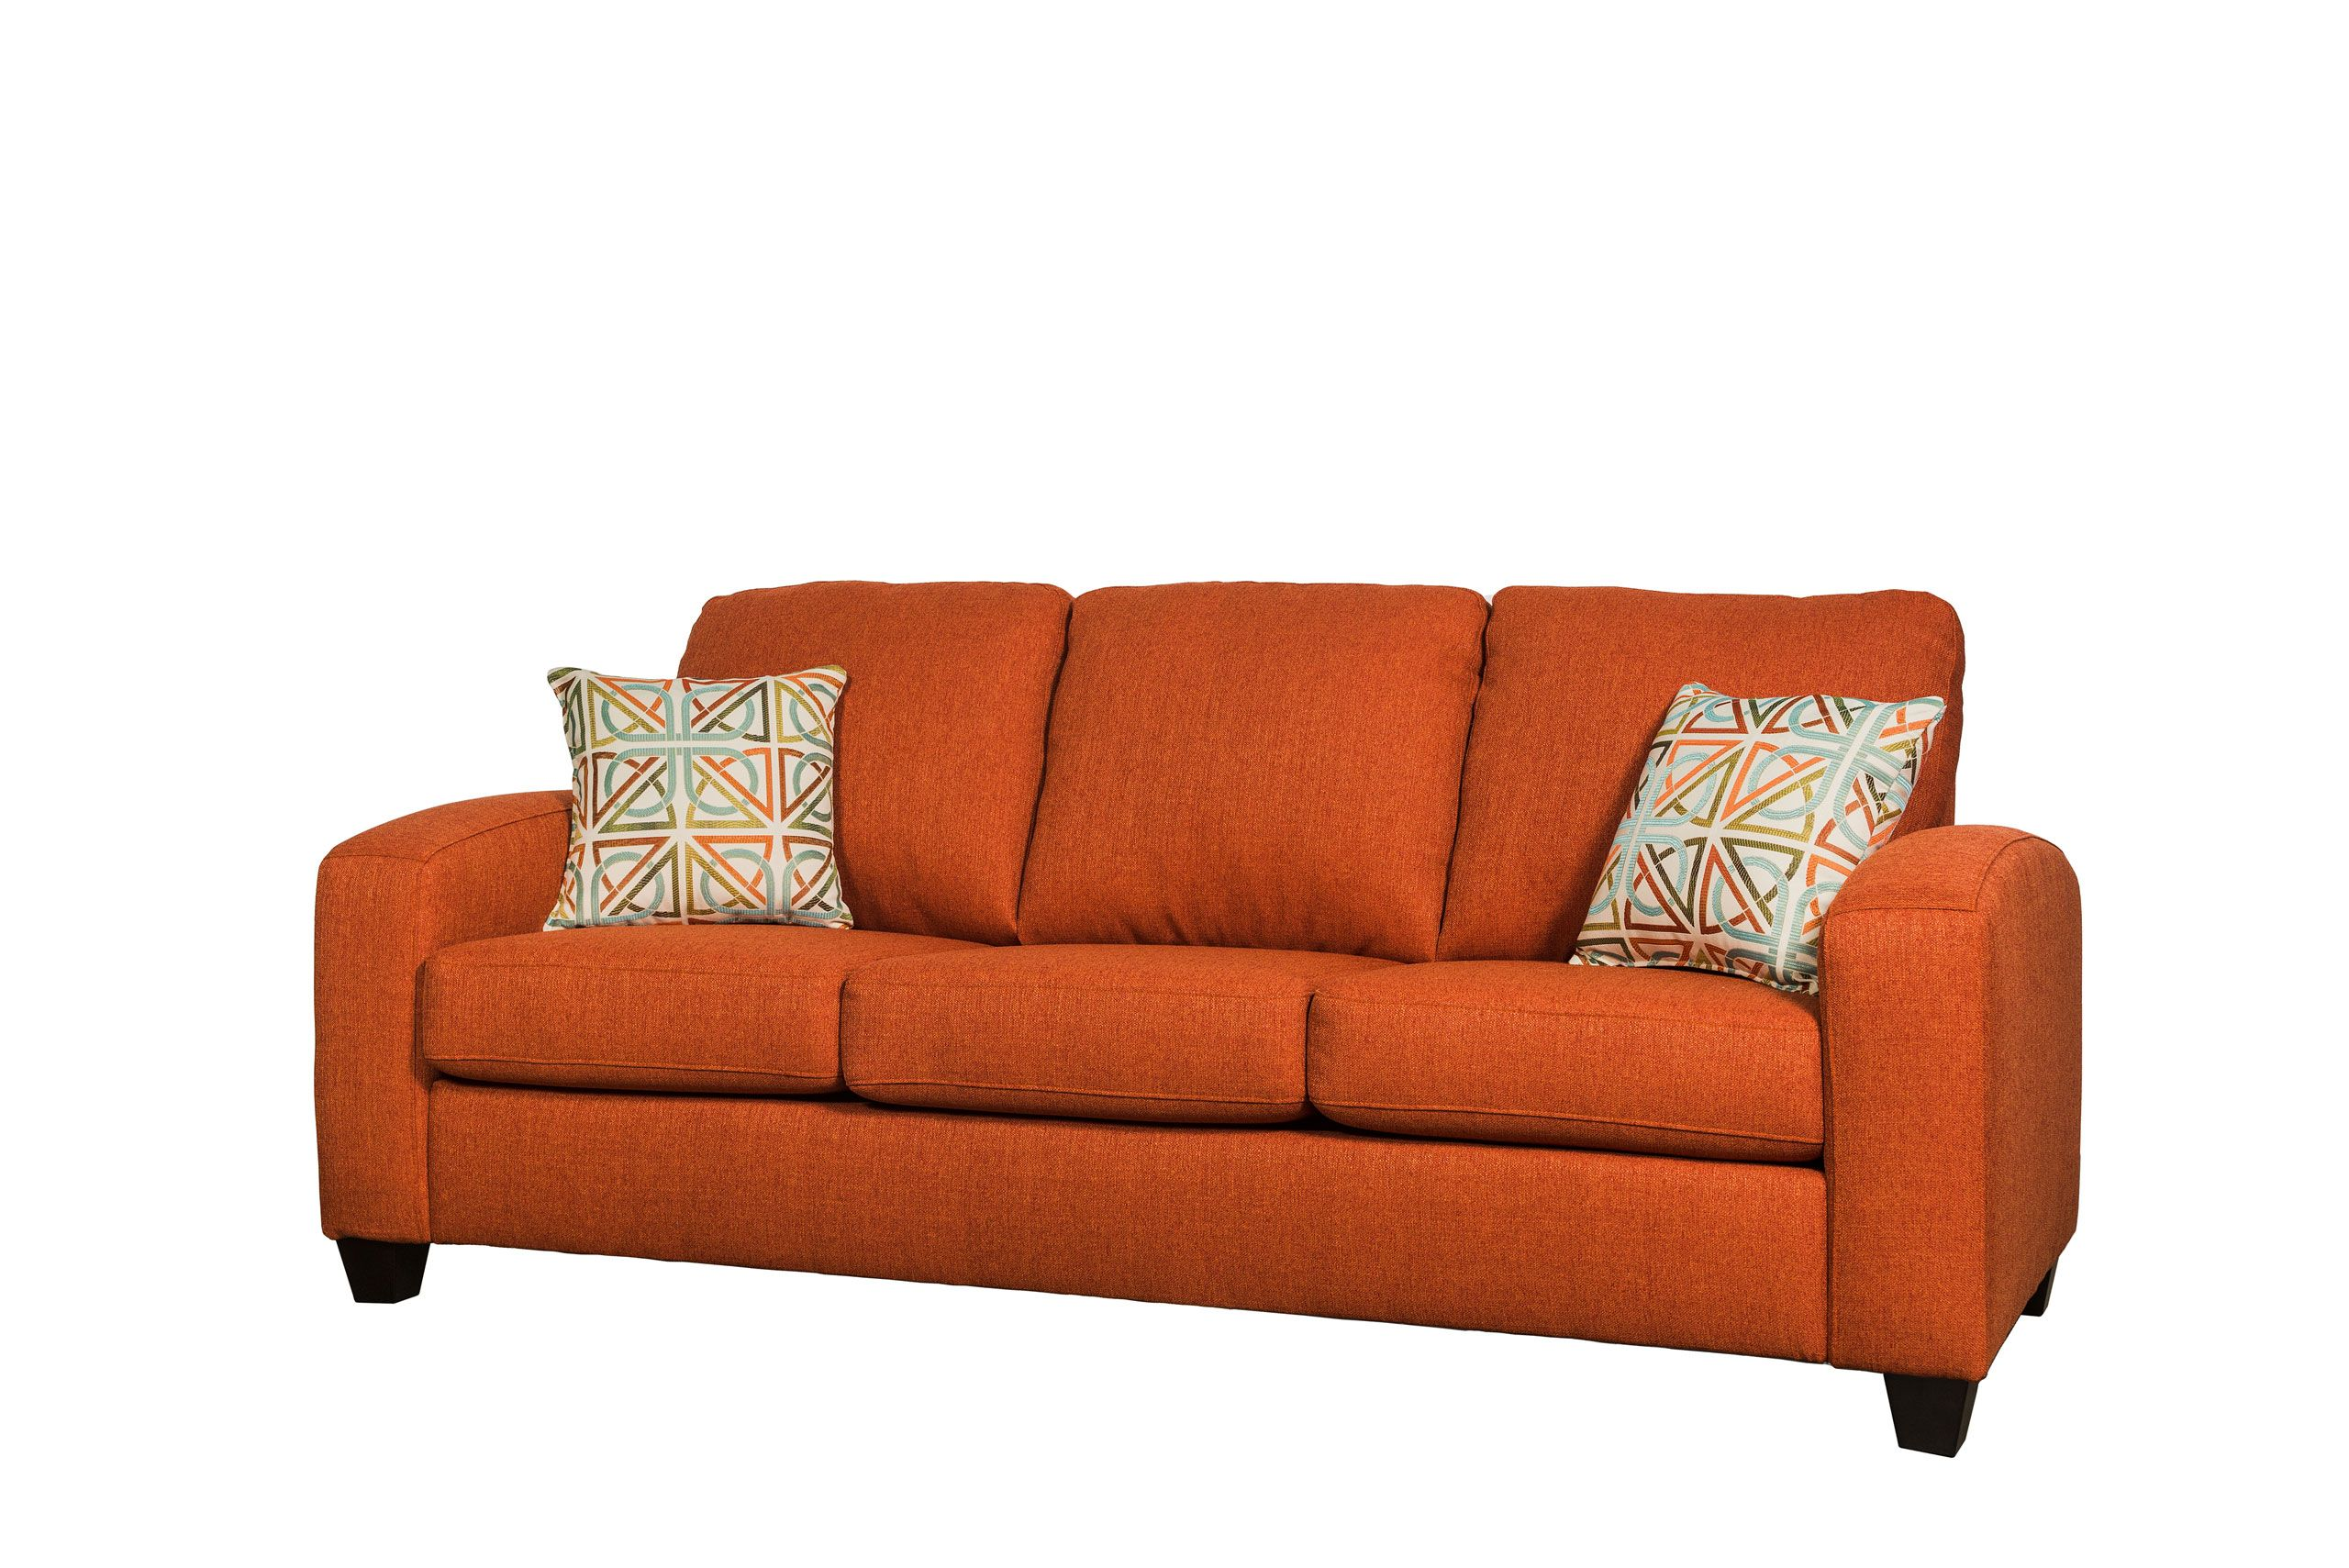 Vancouver Furniture Store Sofas Couches Furniture Sofas Sofa